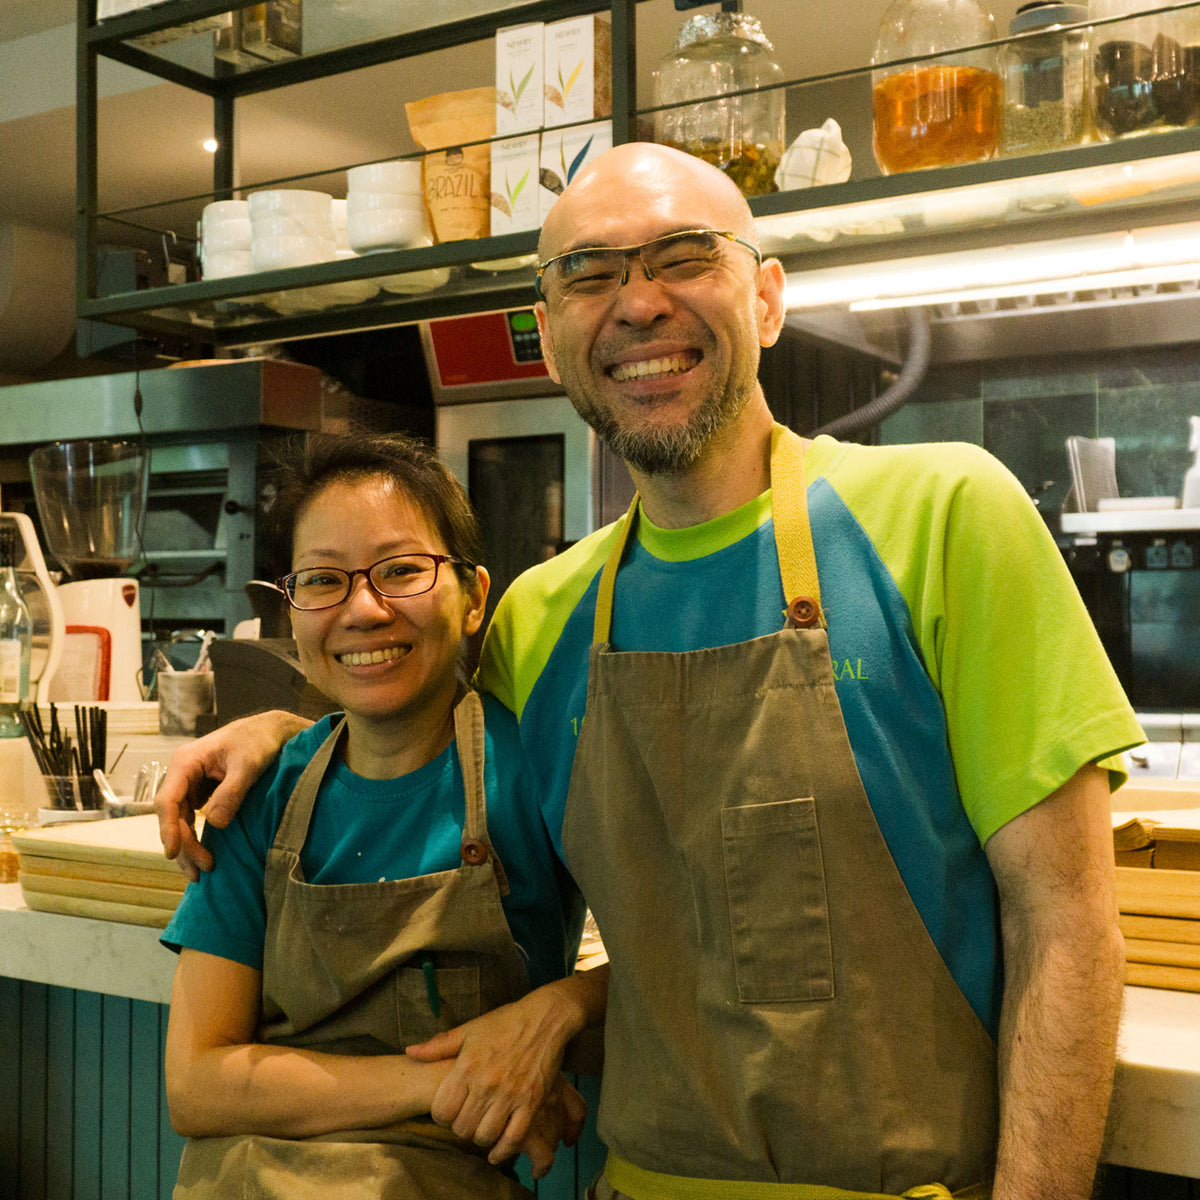 Married couple, Don Lowe and Yen Su Ching, founders and owners of Löwe'f Artisanal, smiling broadly and filled with joy.